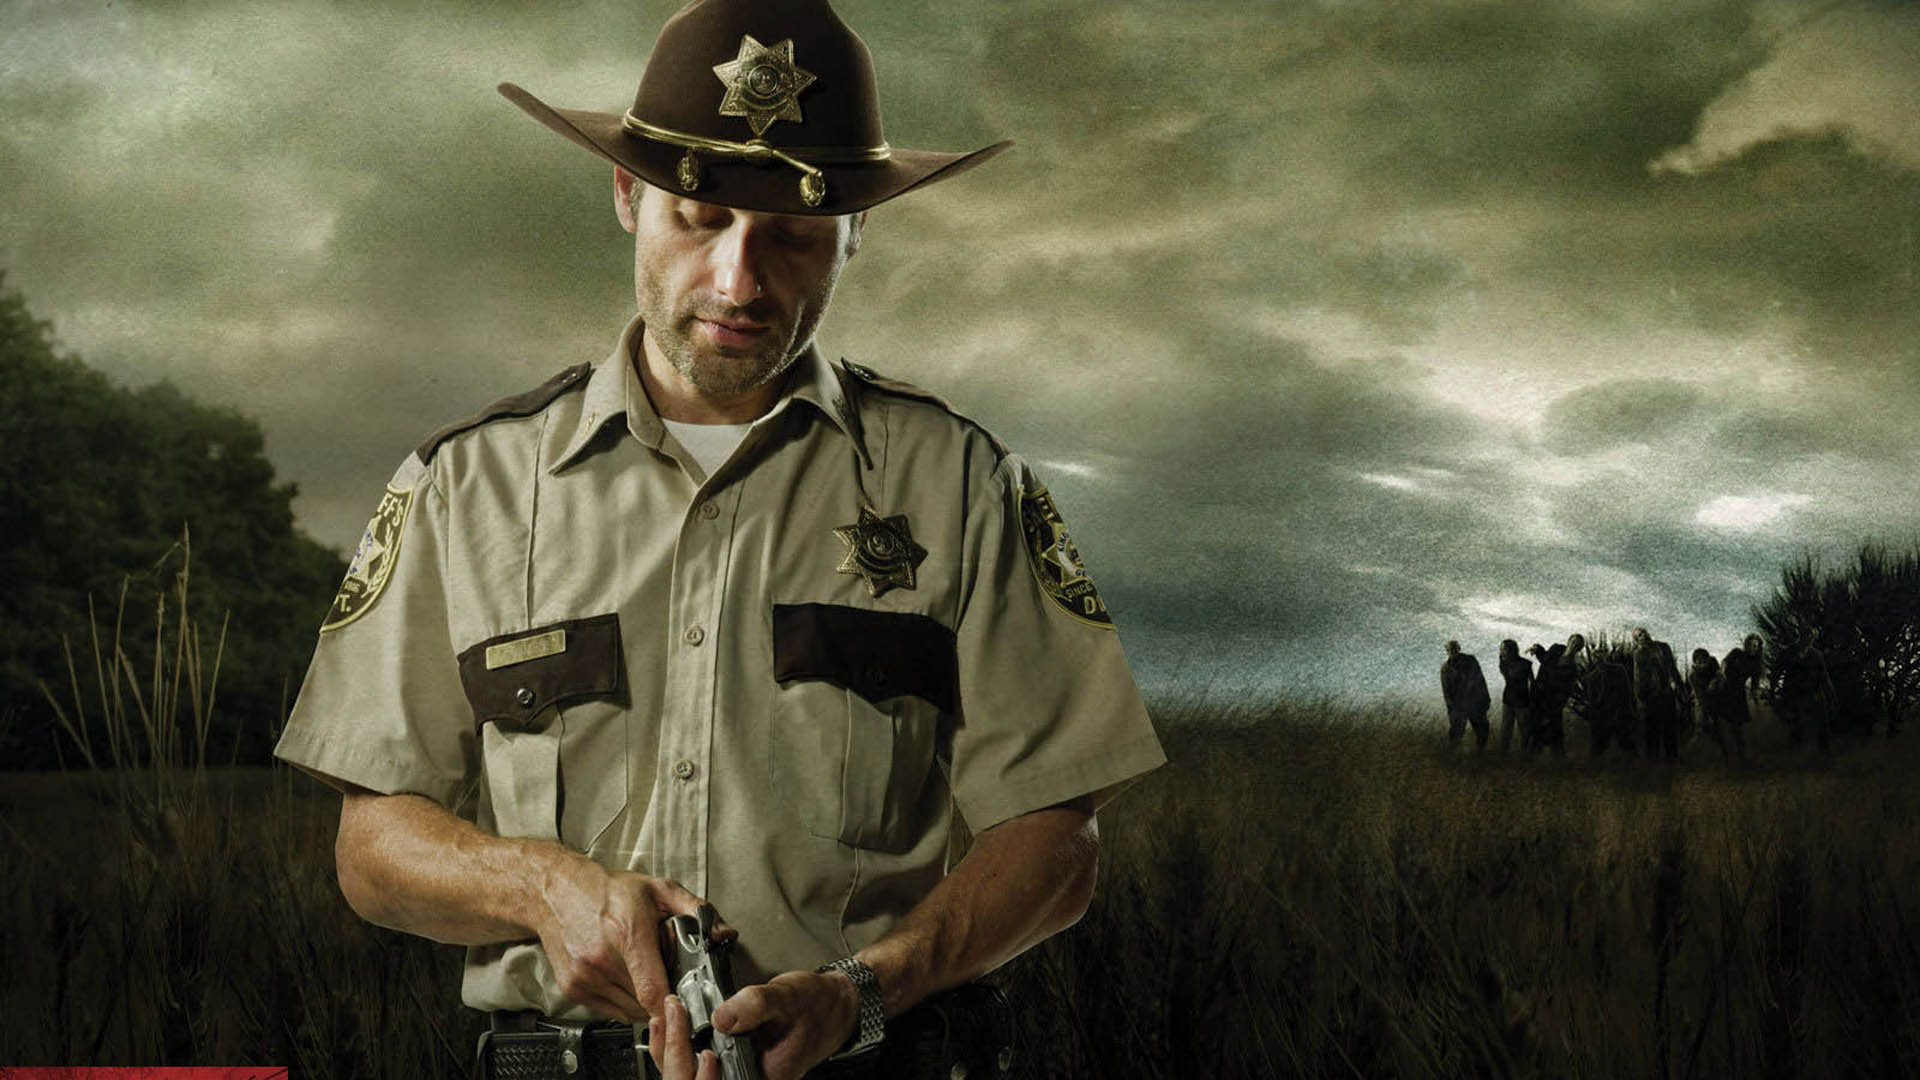 The Walking Dead Picture - Wallpaper, High Definition ...